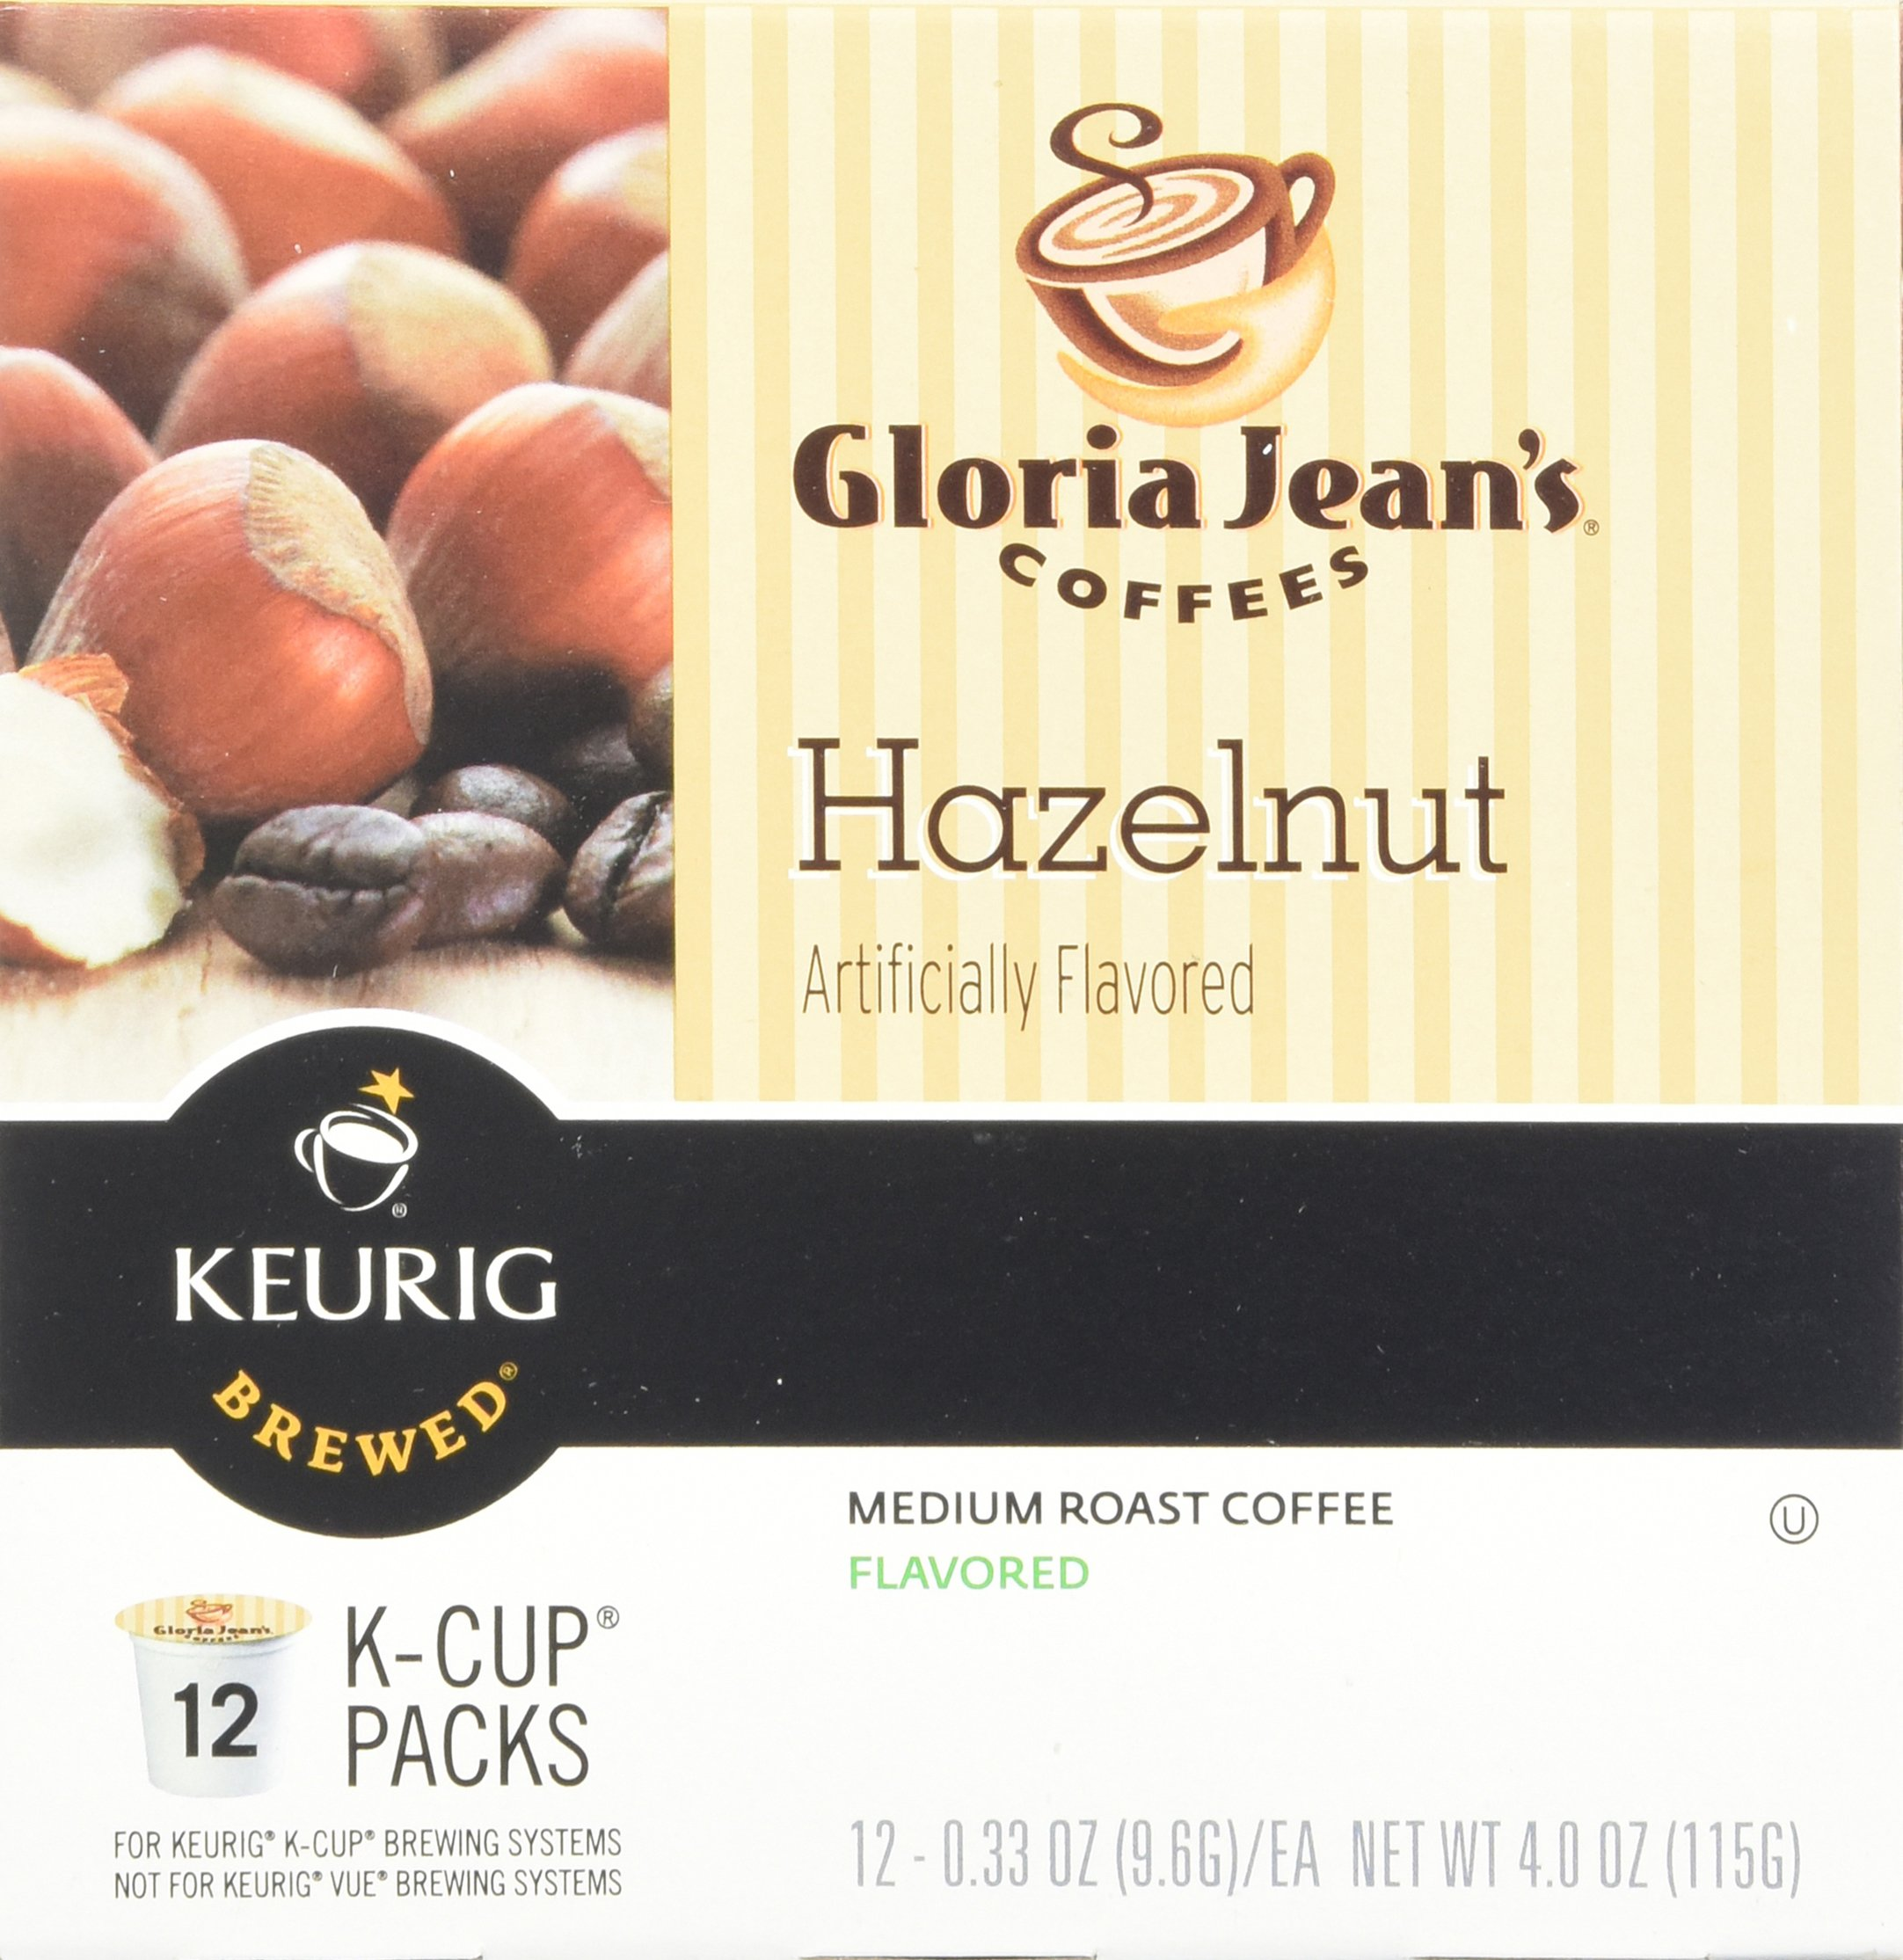 Green Mountain Coffee Roasters Gourmet Single Cup Coffee Hazelnut Gloria Jean's Coffee 12 K-Cups by Green Mountain Coffee Roasters (Image #3)